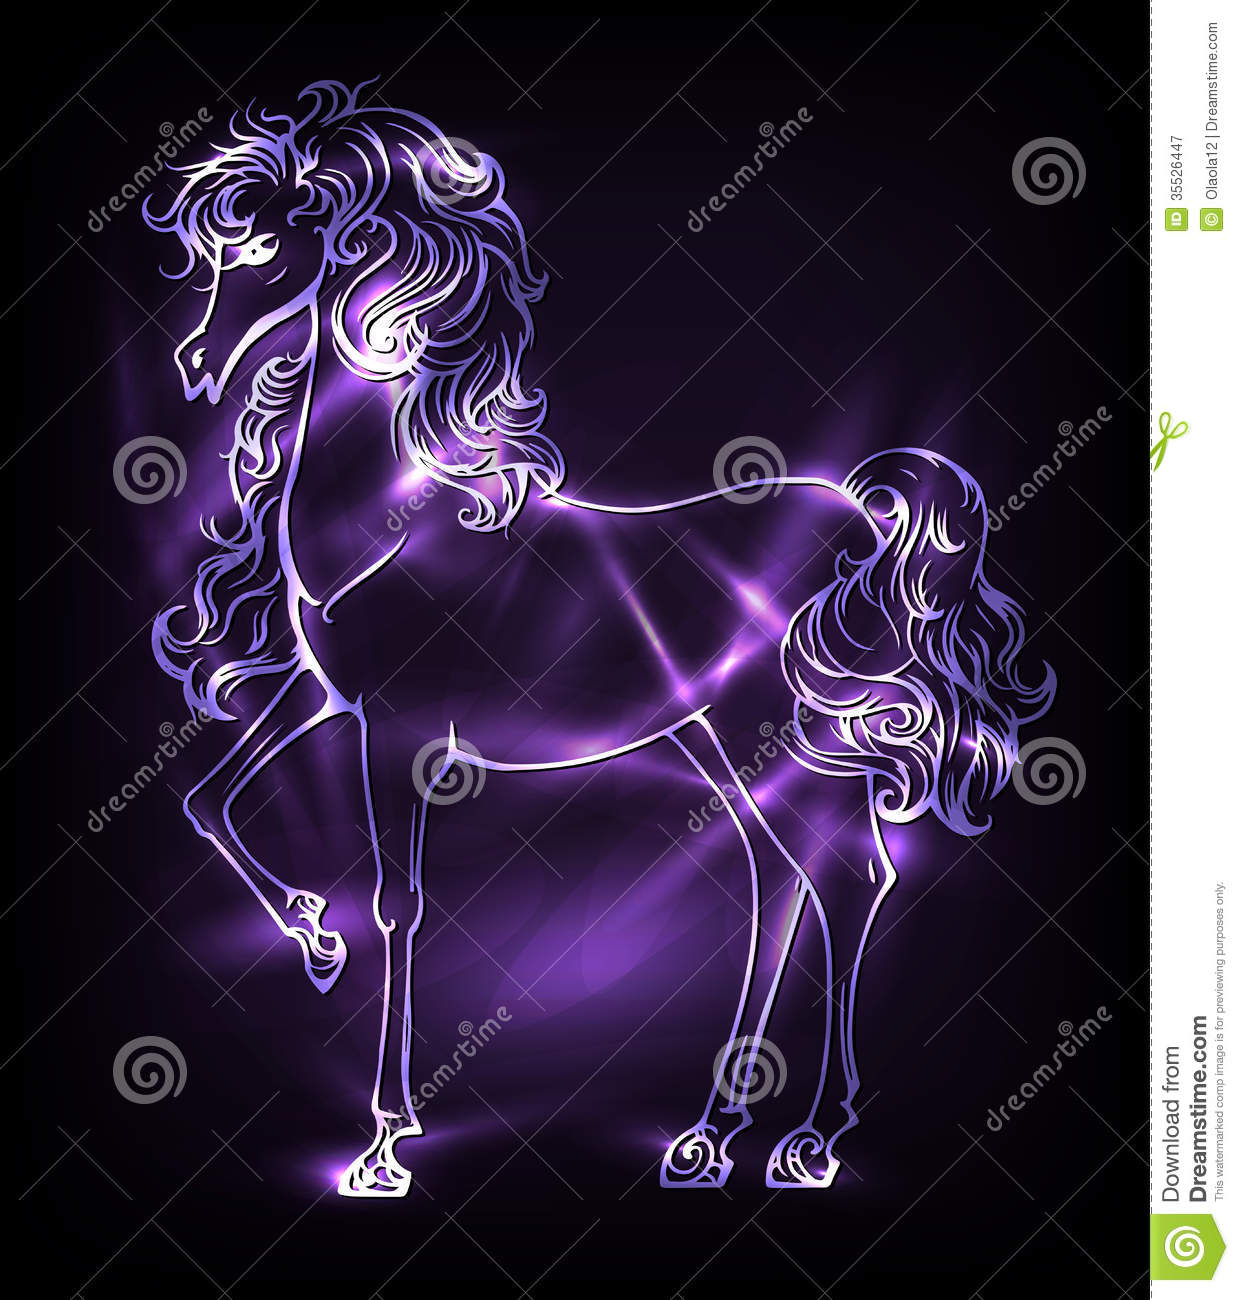 Neon Horse Royalty Free Stock Photography - Image: 35526447